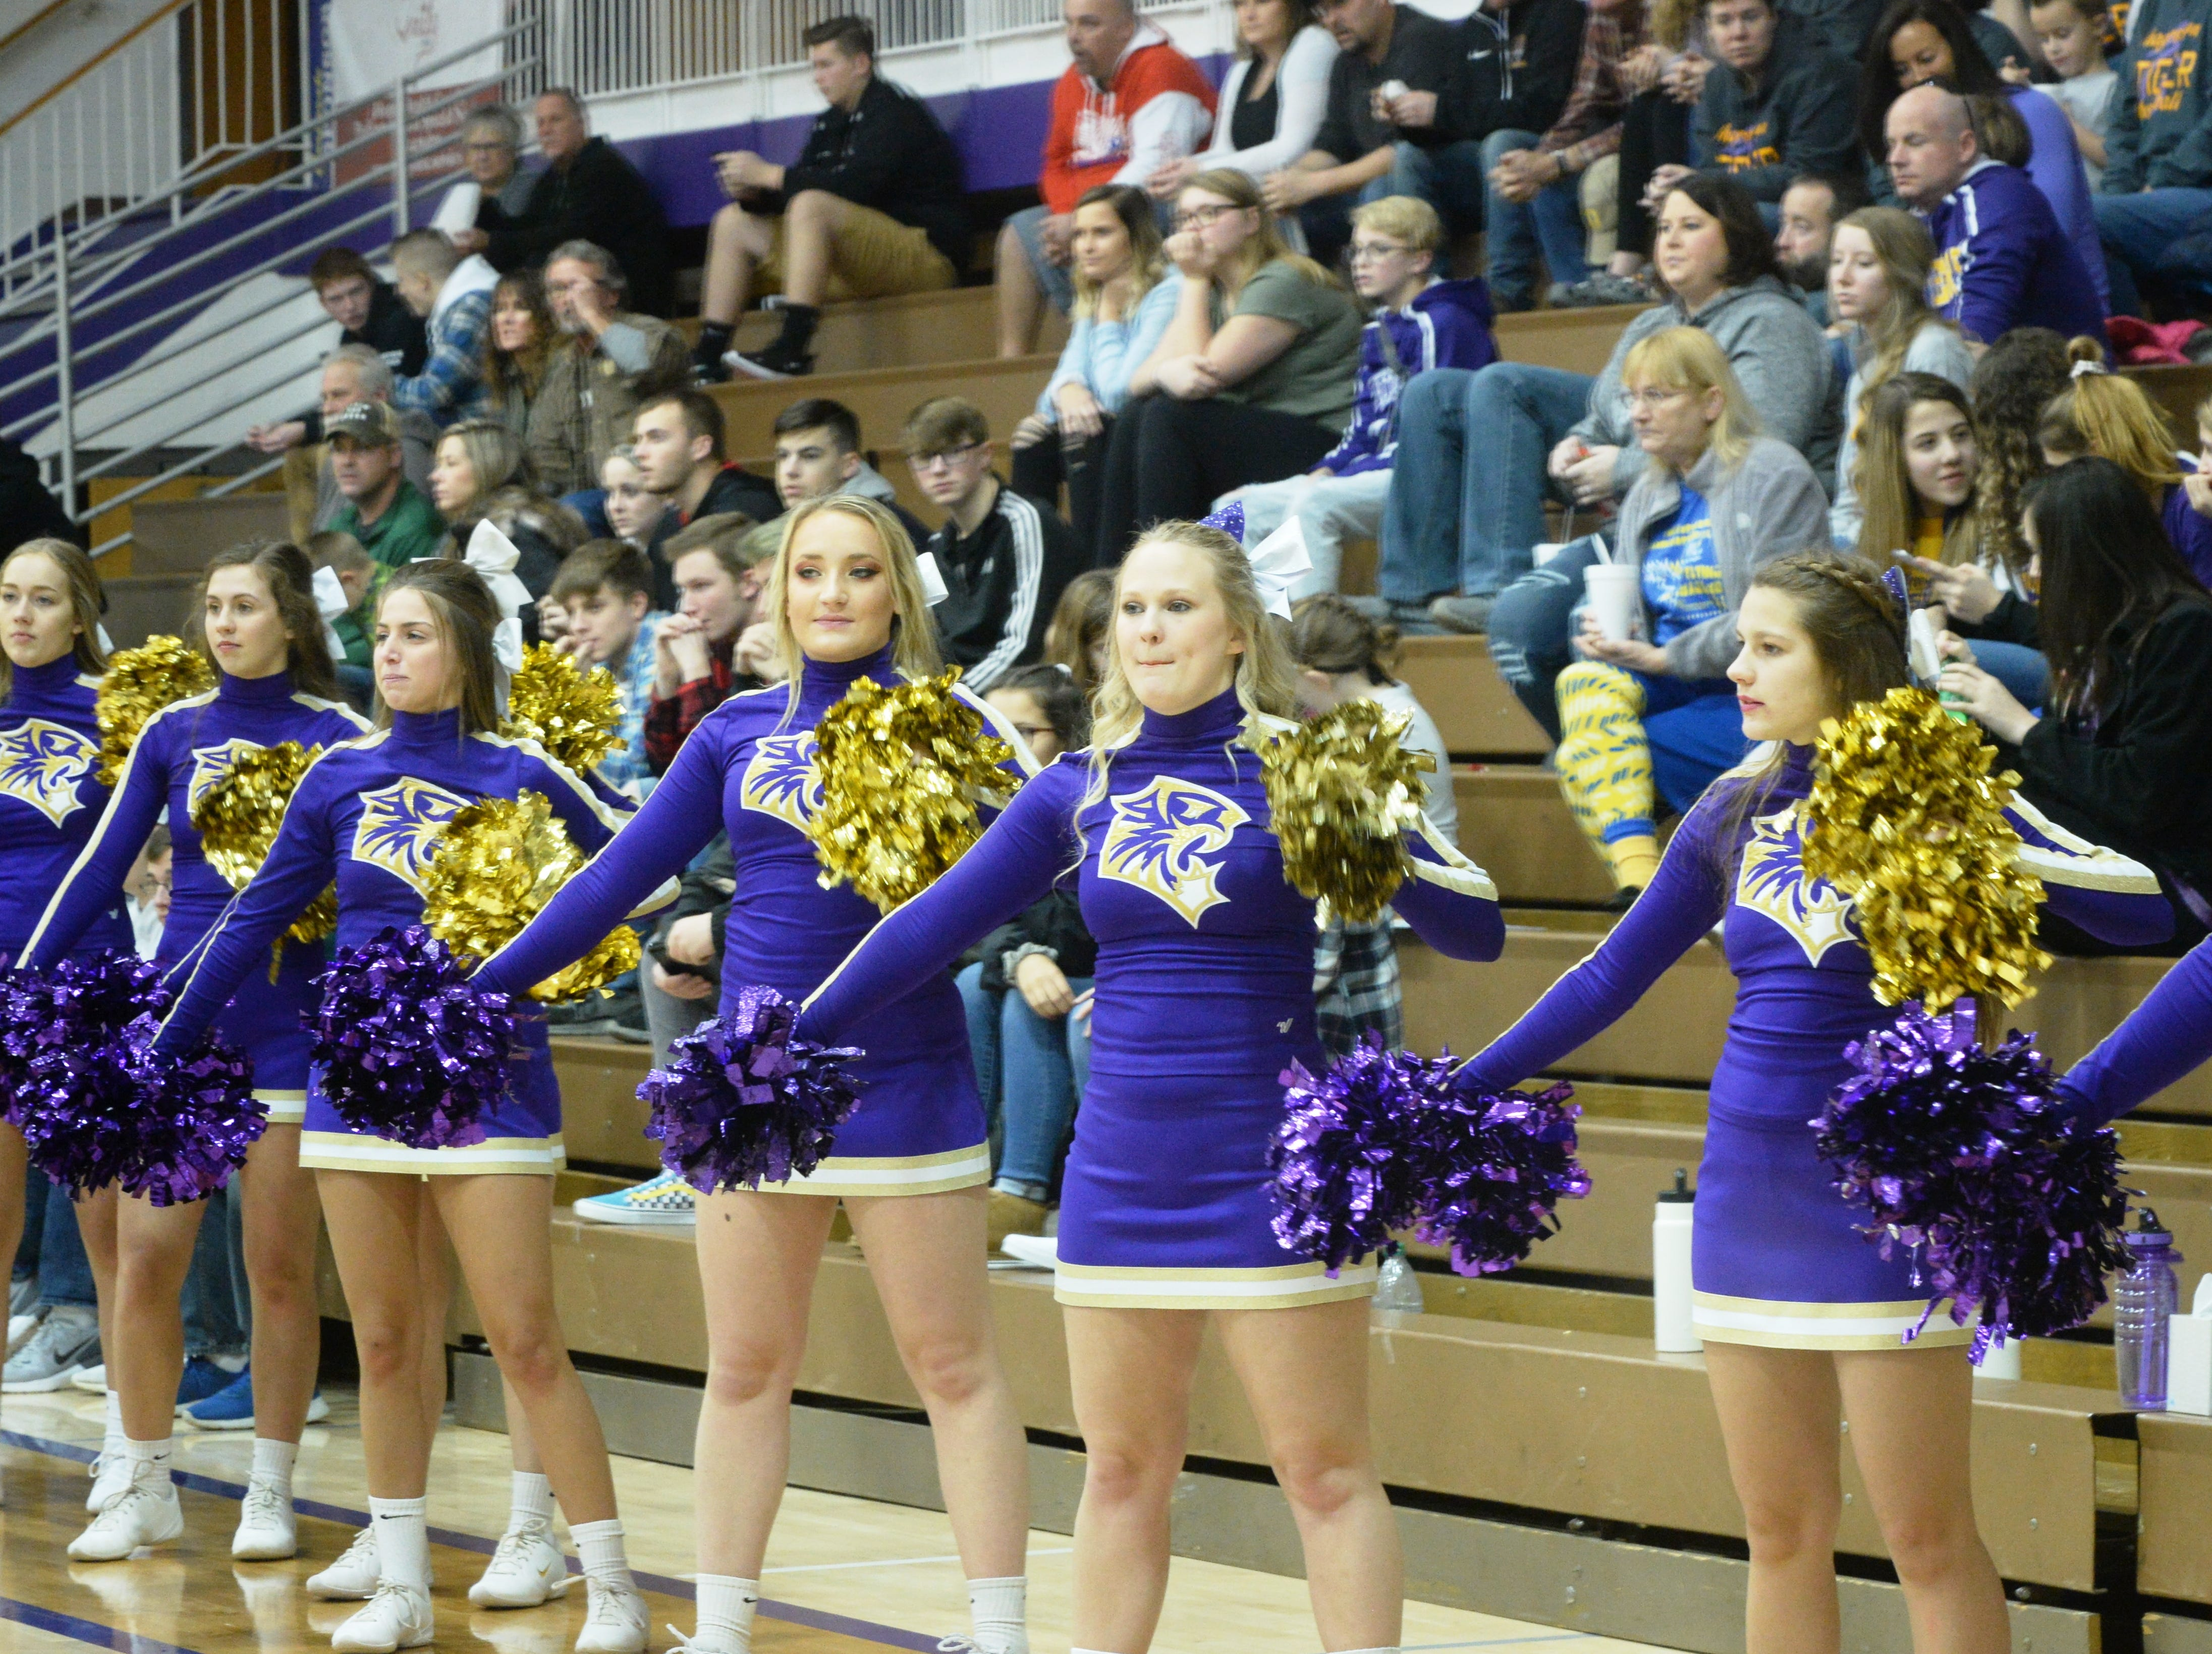 Hagerstown cheerleaders during the Wayne County girls basketball championship at Hagerstown Saturday, Jan. 5, 2019. Hagerstown defeated Northeastern 37-35 to win the girls' title, and Northeastern beat Hagerstown 60-49 in the boys championship.